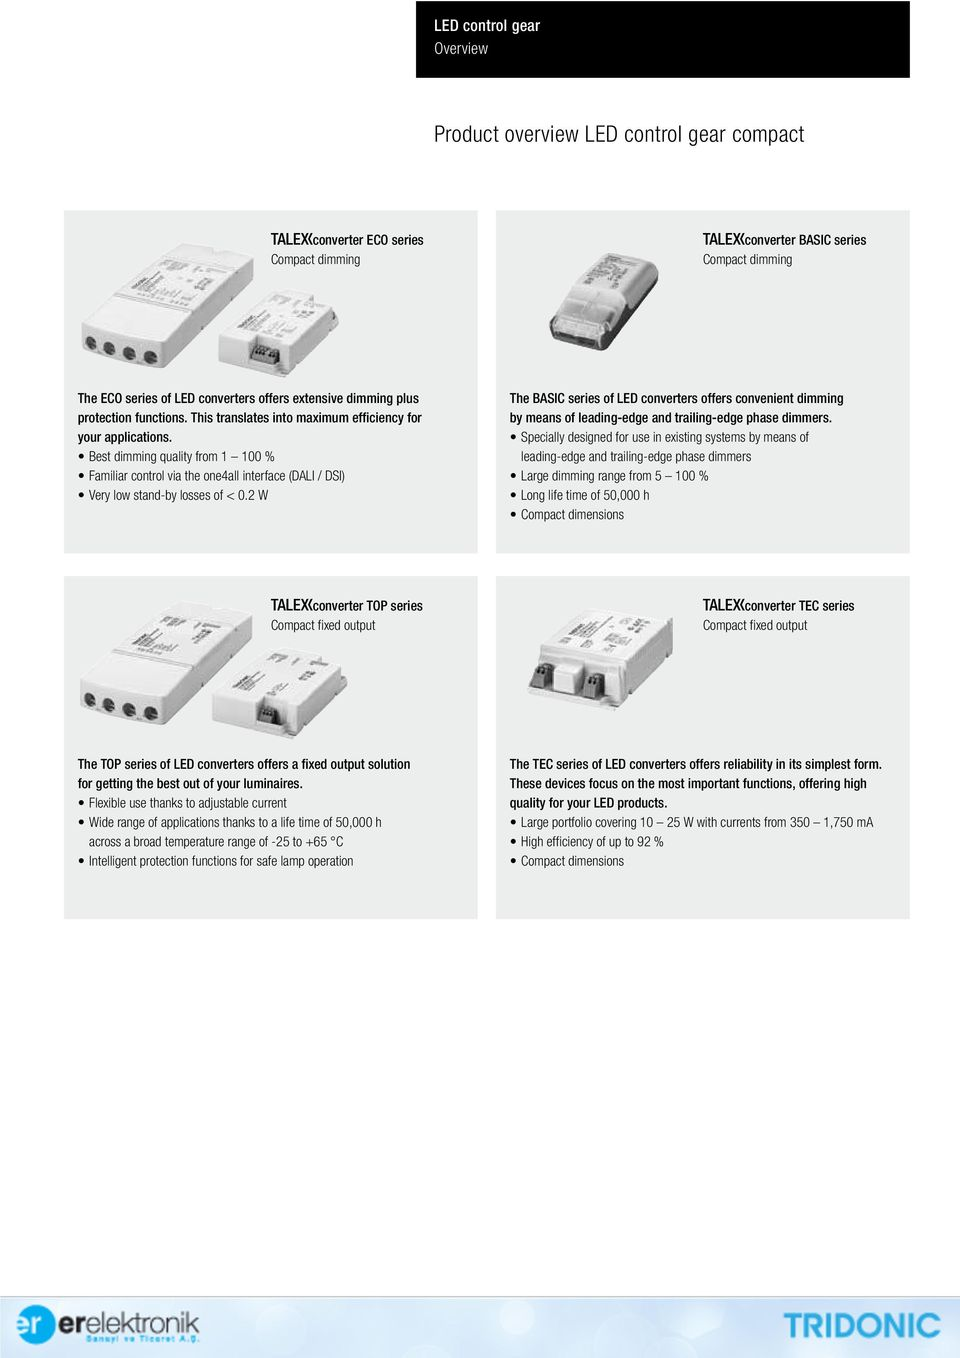 2 W The BASIC series of LED converters offers convenient dimming by means of leading-edge and trailing-edge phase dimmers.